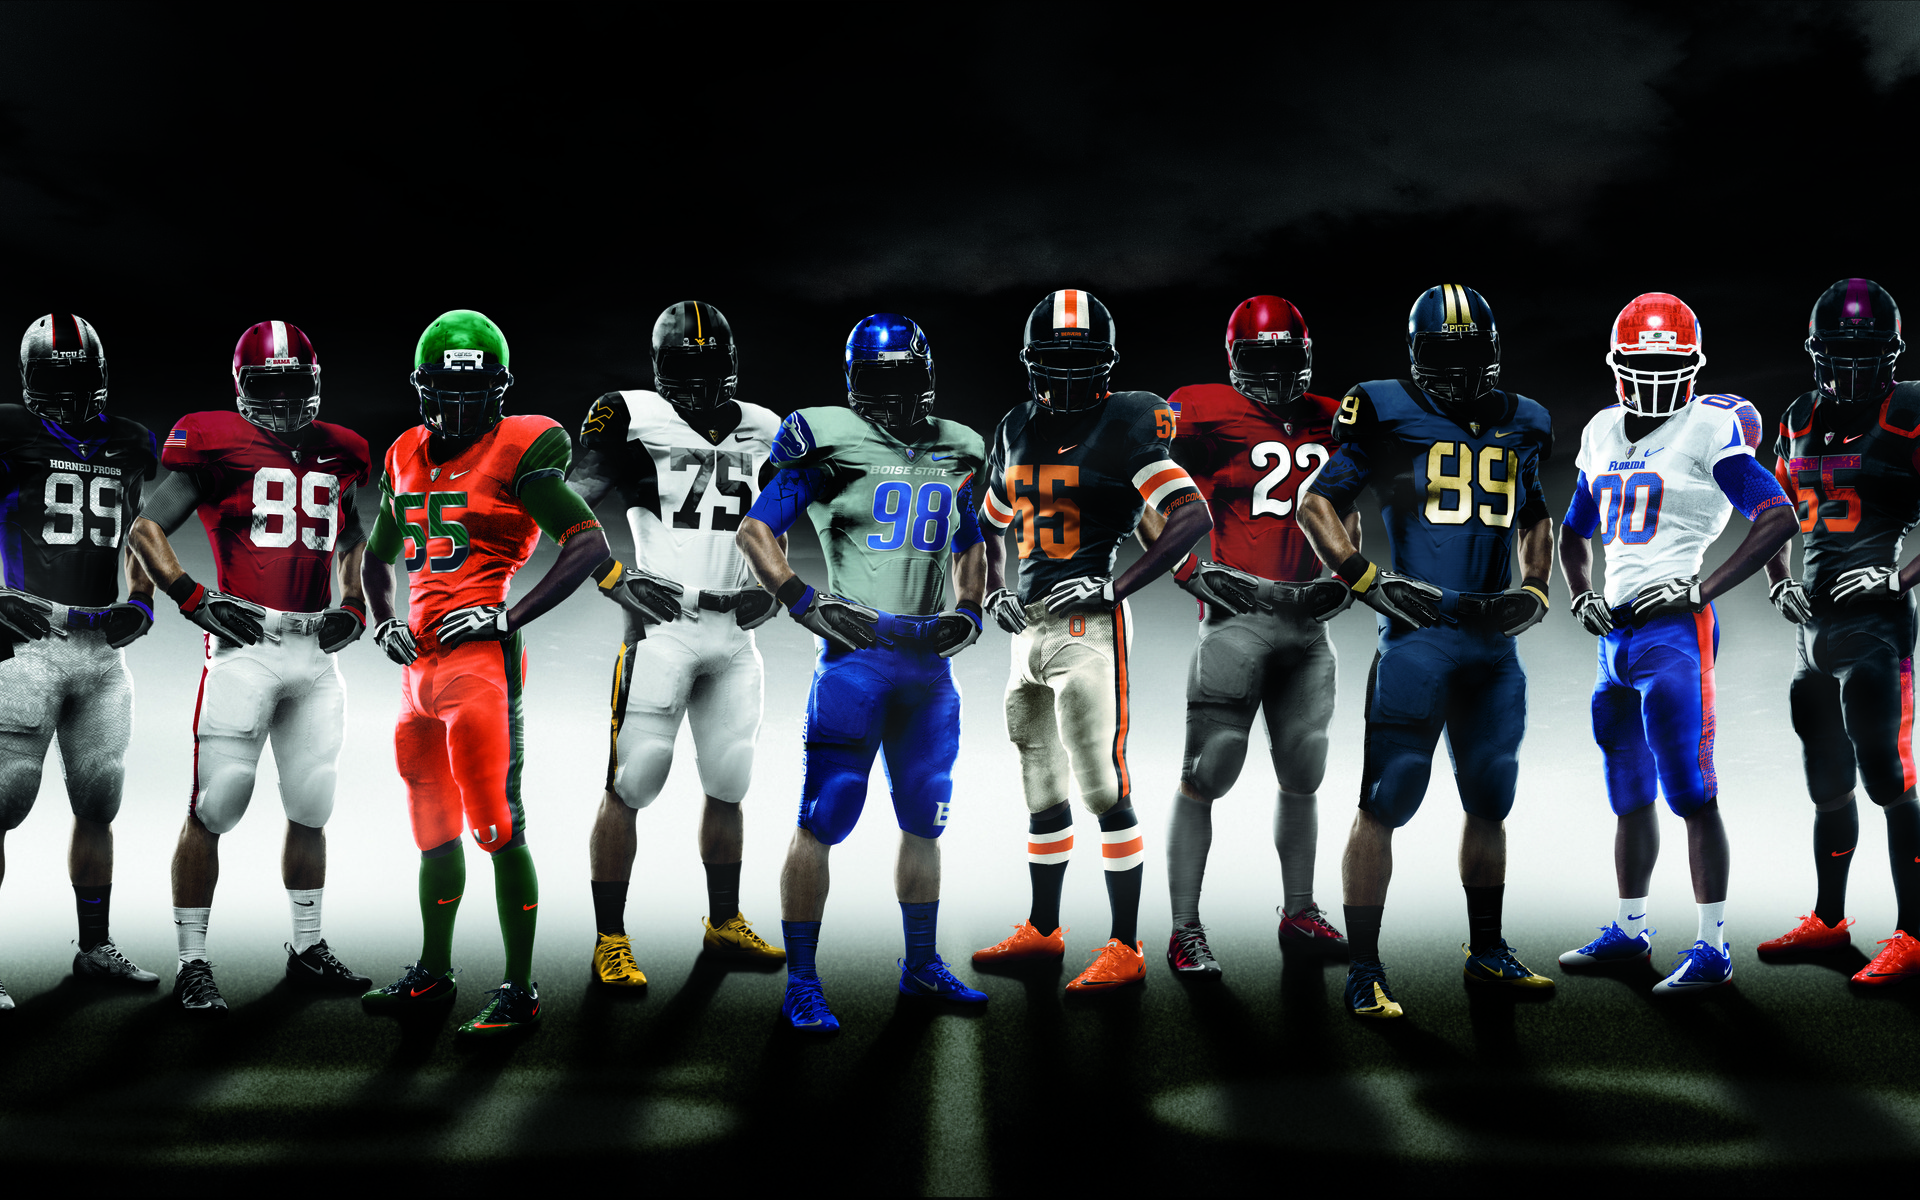 College Football Wallpaper NCAA Nike Pro combat in 2010 HD 1920x1200